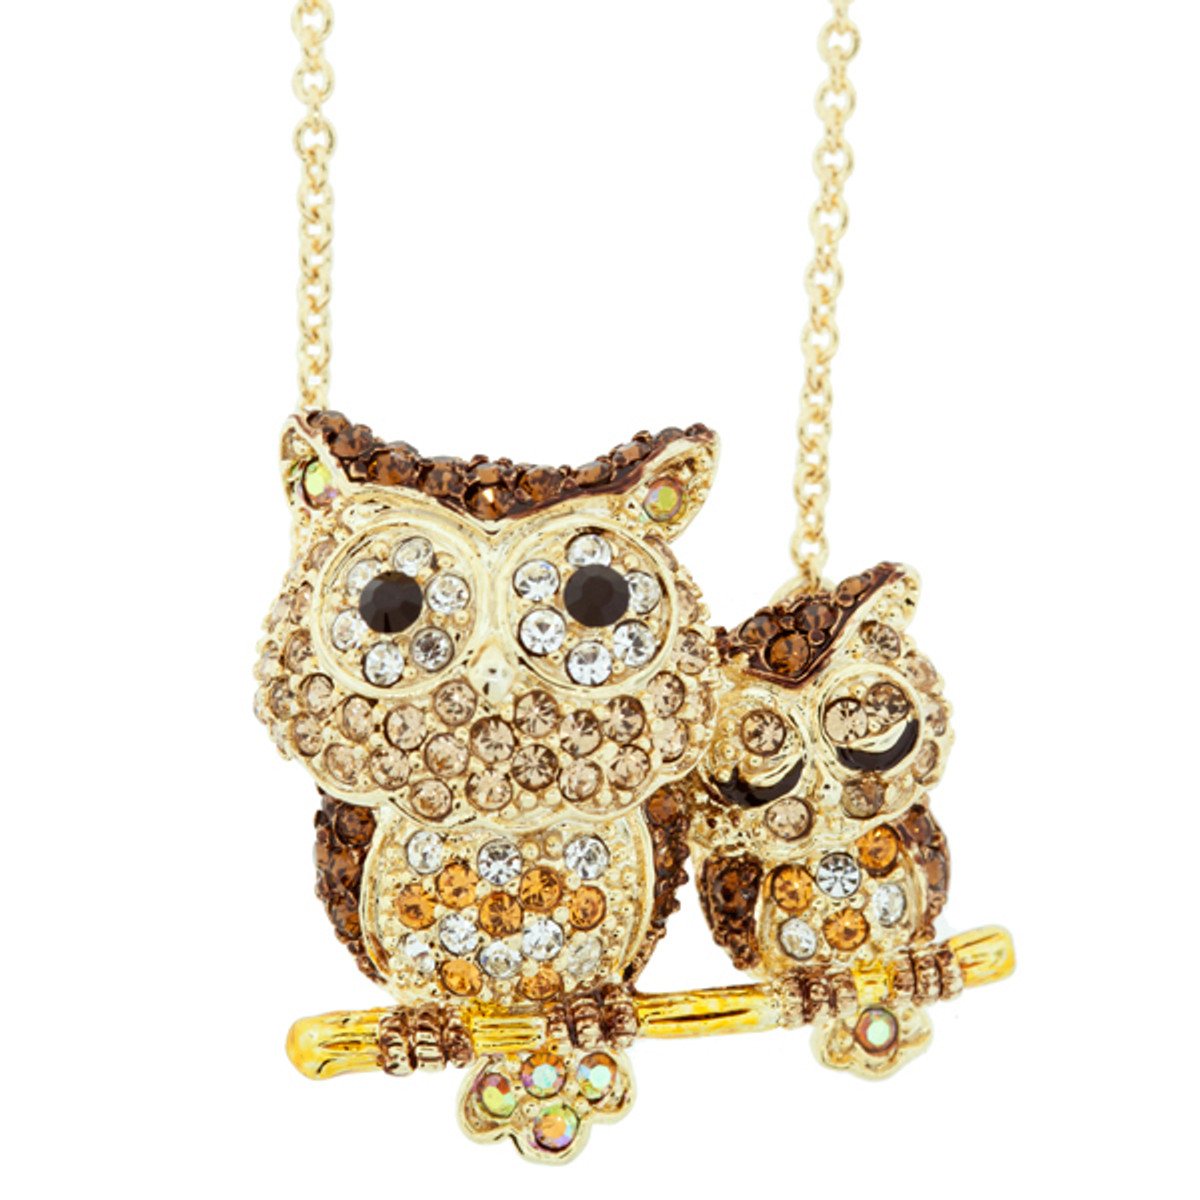 Andrew Hamilton Crawford Necklace Double Owl Necklace Gold